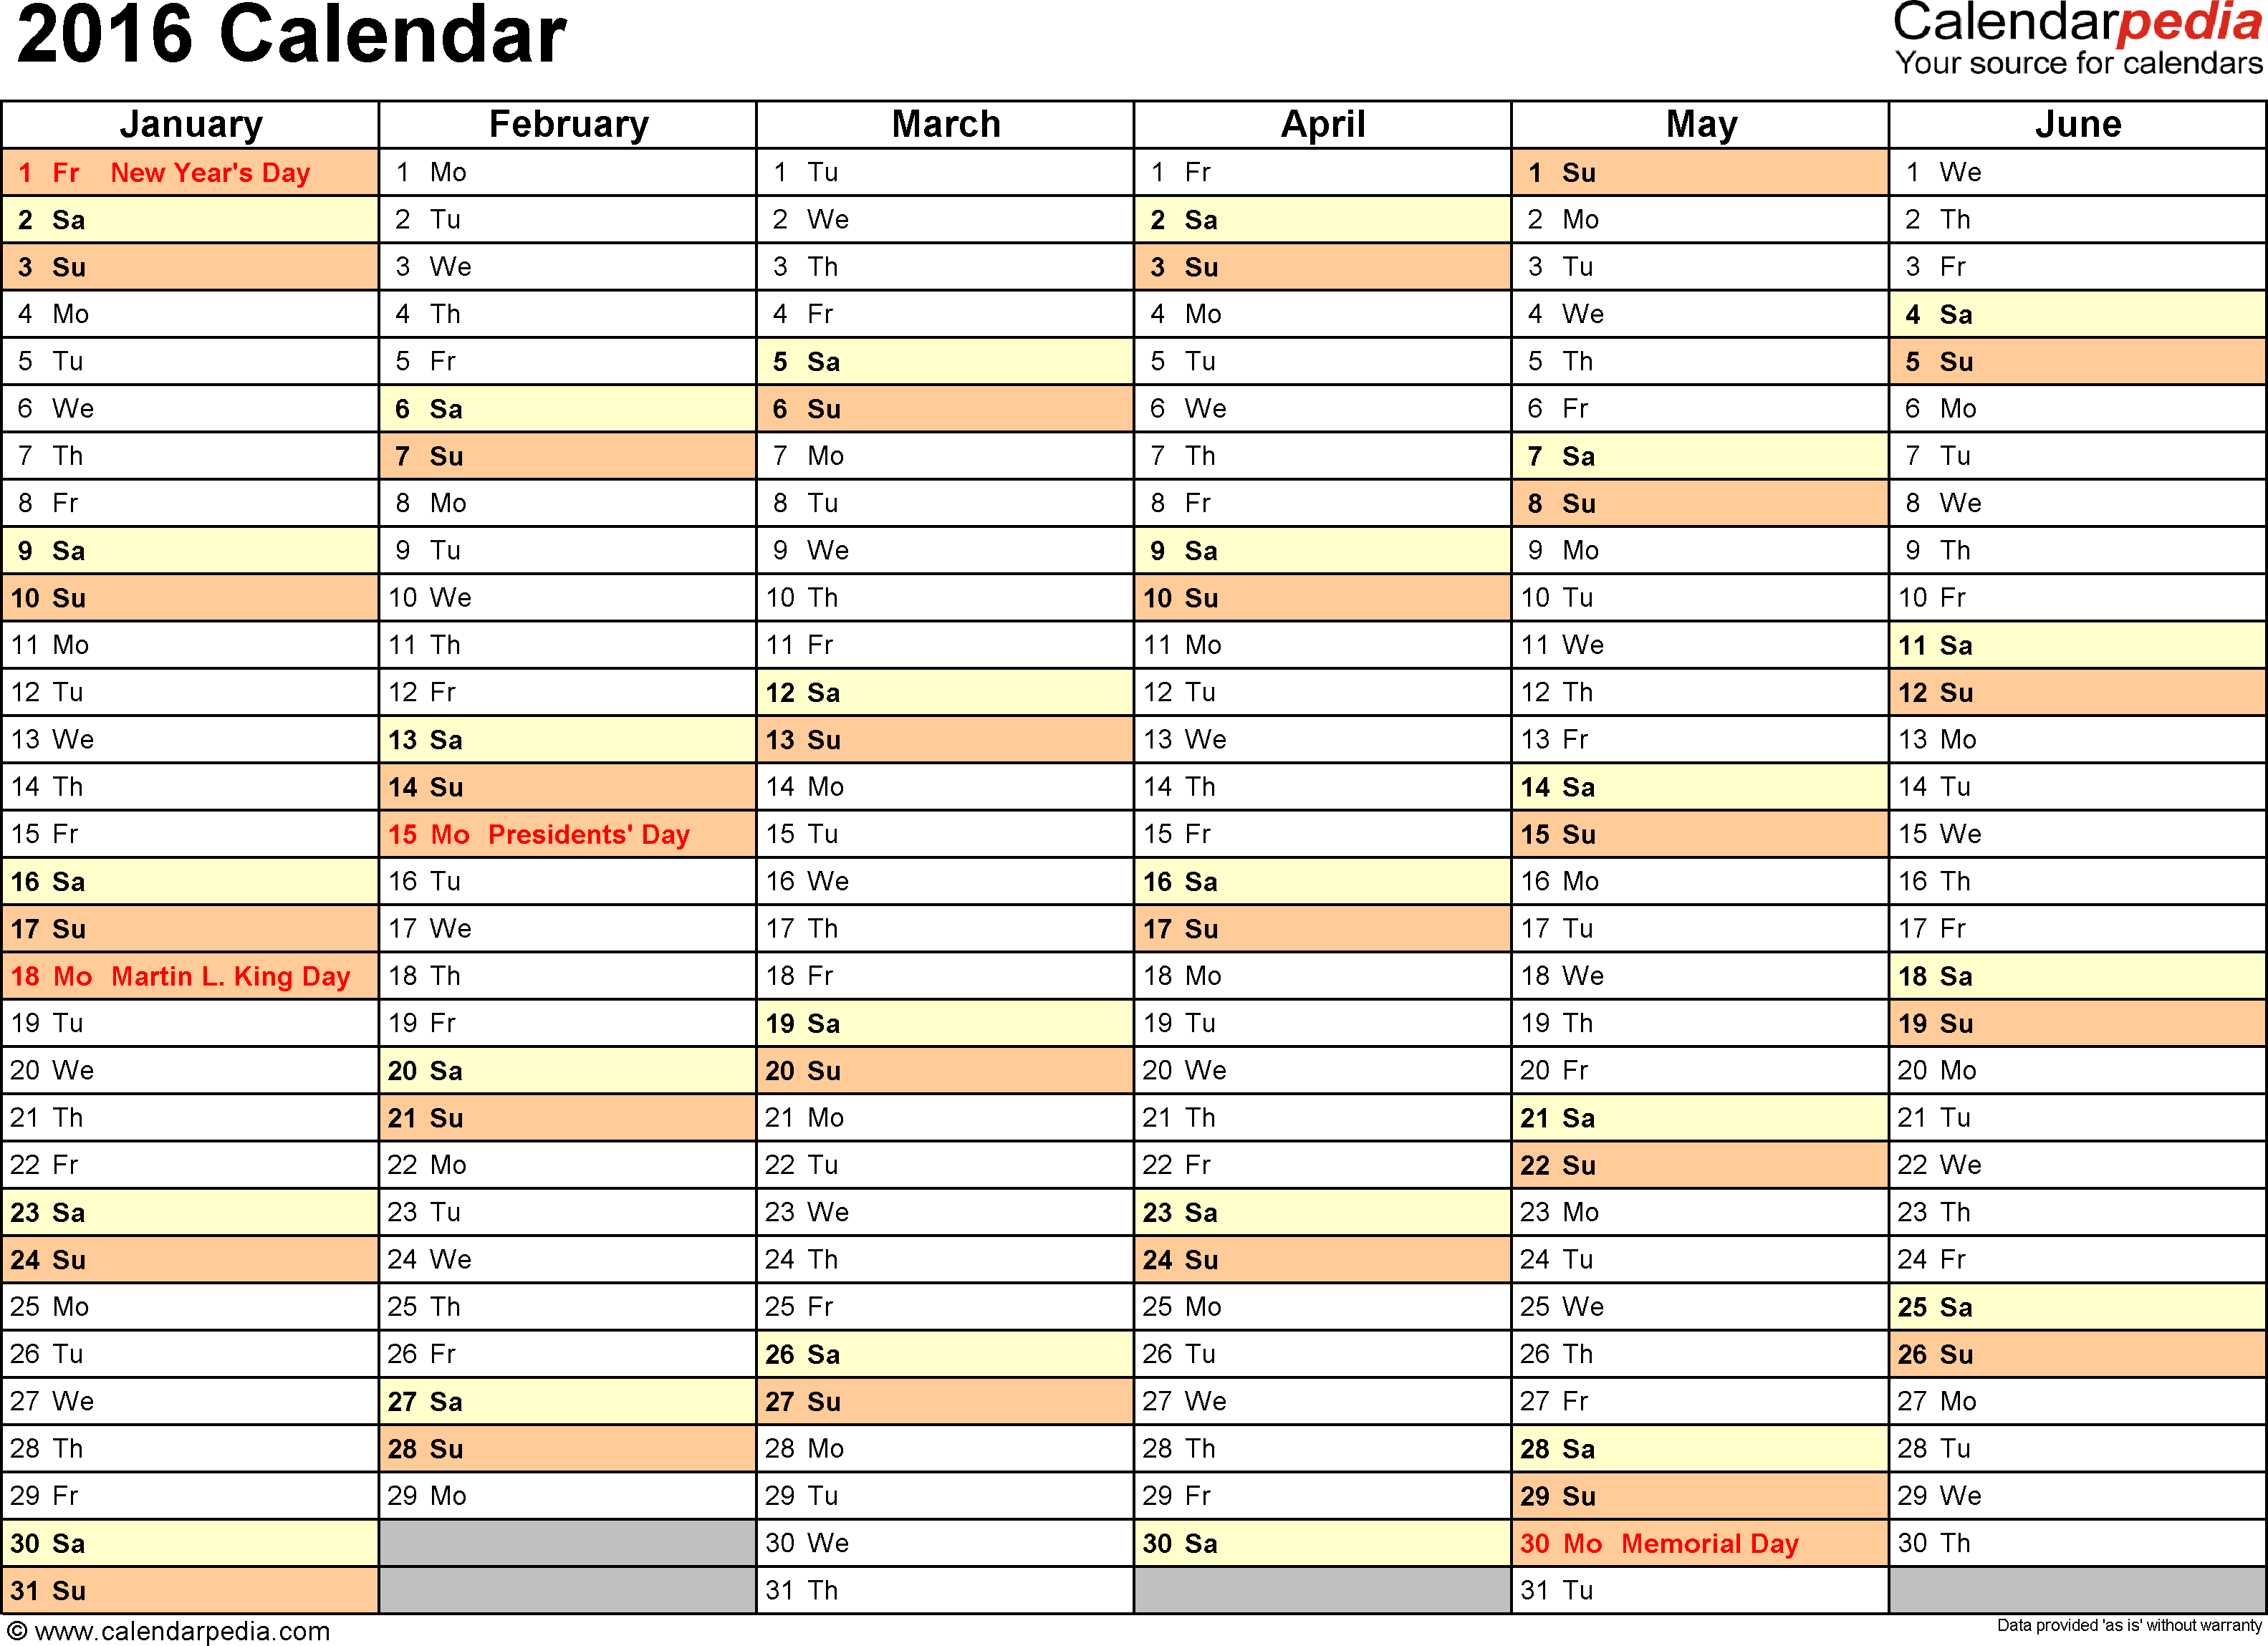 Ediblewildsus  Inspiring  Calendar  Download  Free Printable Excel Templates Xls With Fascinating Template   Calendar For Excel Months Horizontally  Pages Landscape Orientation With Enchanting Index Search Excel Also Ctrl Y Excel In Addition Excel Macro Location And Excel Vba Delete Multiple Rows As Well As How To Calculate Z Scores In Excel Additionally Excel If And Else From Calendarpediacom With Ediblewildsus  Fascinating  Calendar  Download  Free Printable Excel Templates Xls With Enchanting Template   Calendar For Excel Months Horizontally  Pages Landscape Orientation And Inspiring Index Search Excel Also Ctrl Y Excel In Addition Excel Macro Location From Calendarpediacom